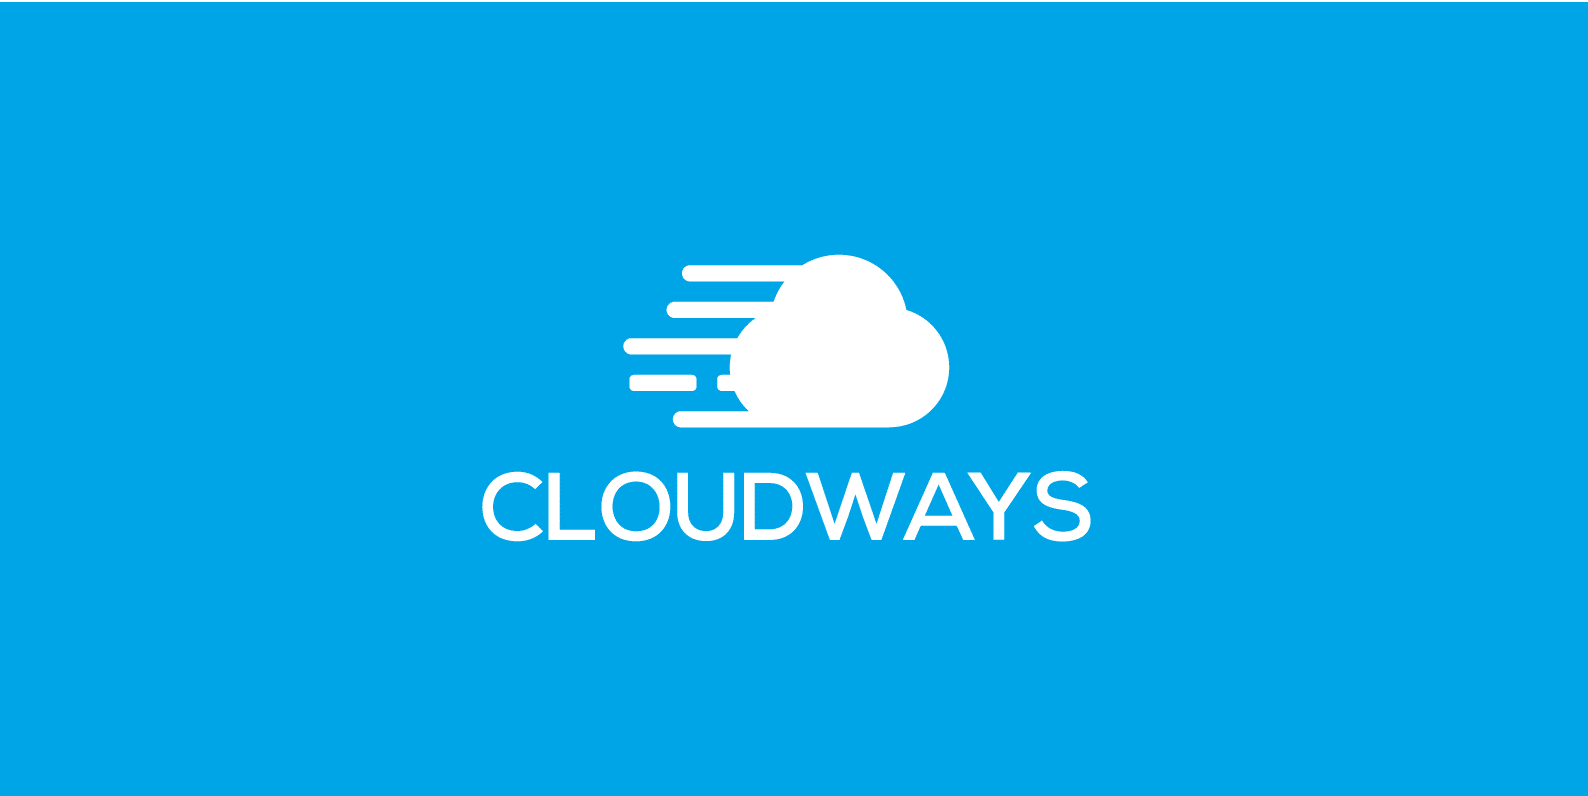 cloudways-main